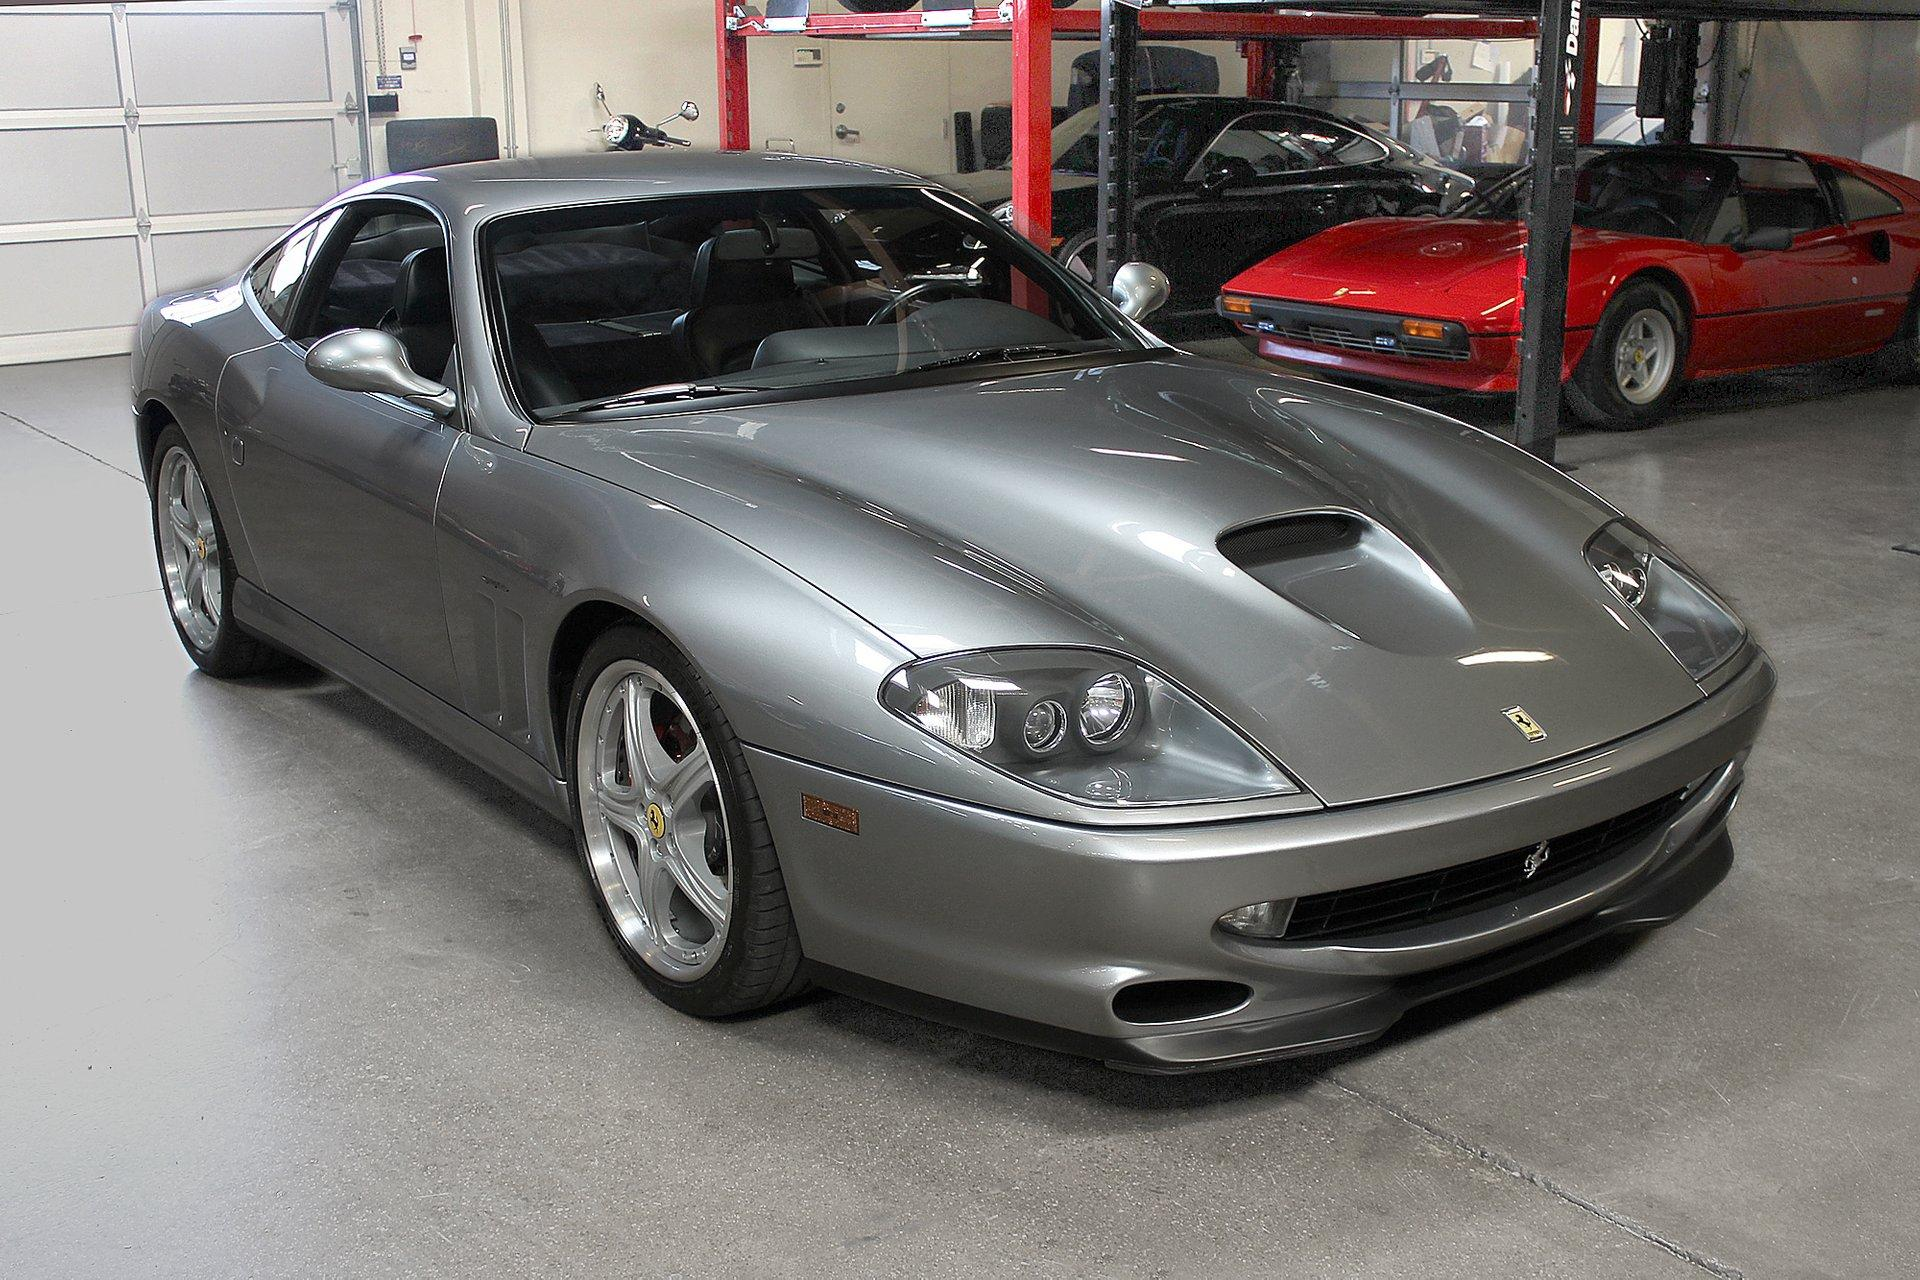 Used 2000 Ferrari 550 Maranello for sale Sold at San Francisco Sports Cars in San Carlos CA 94070 1